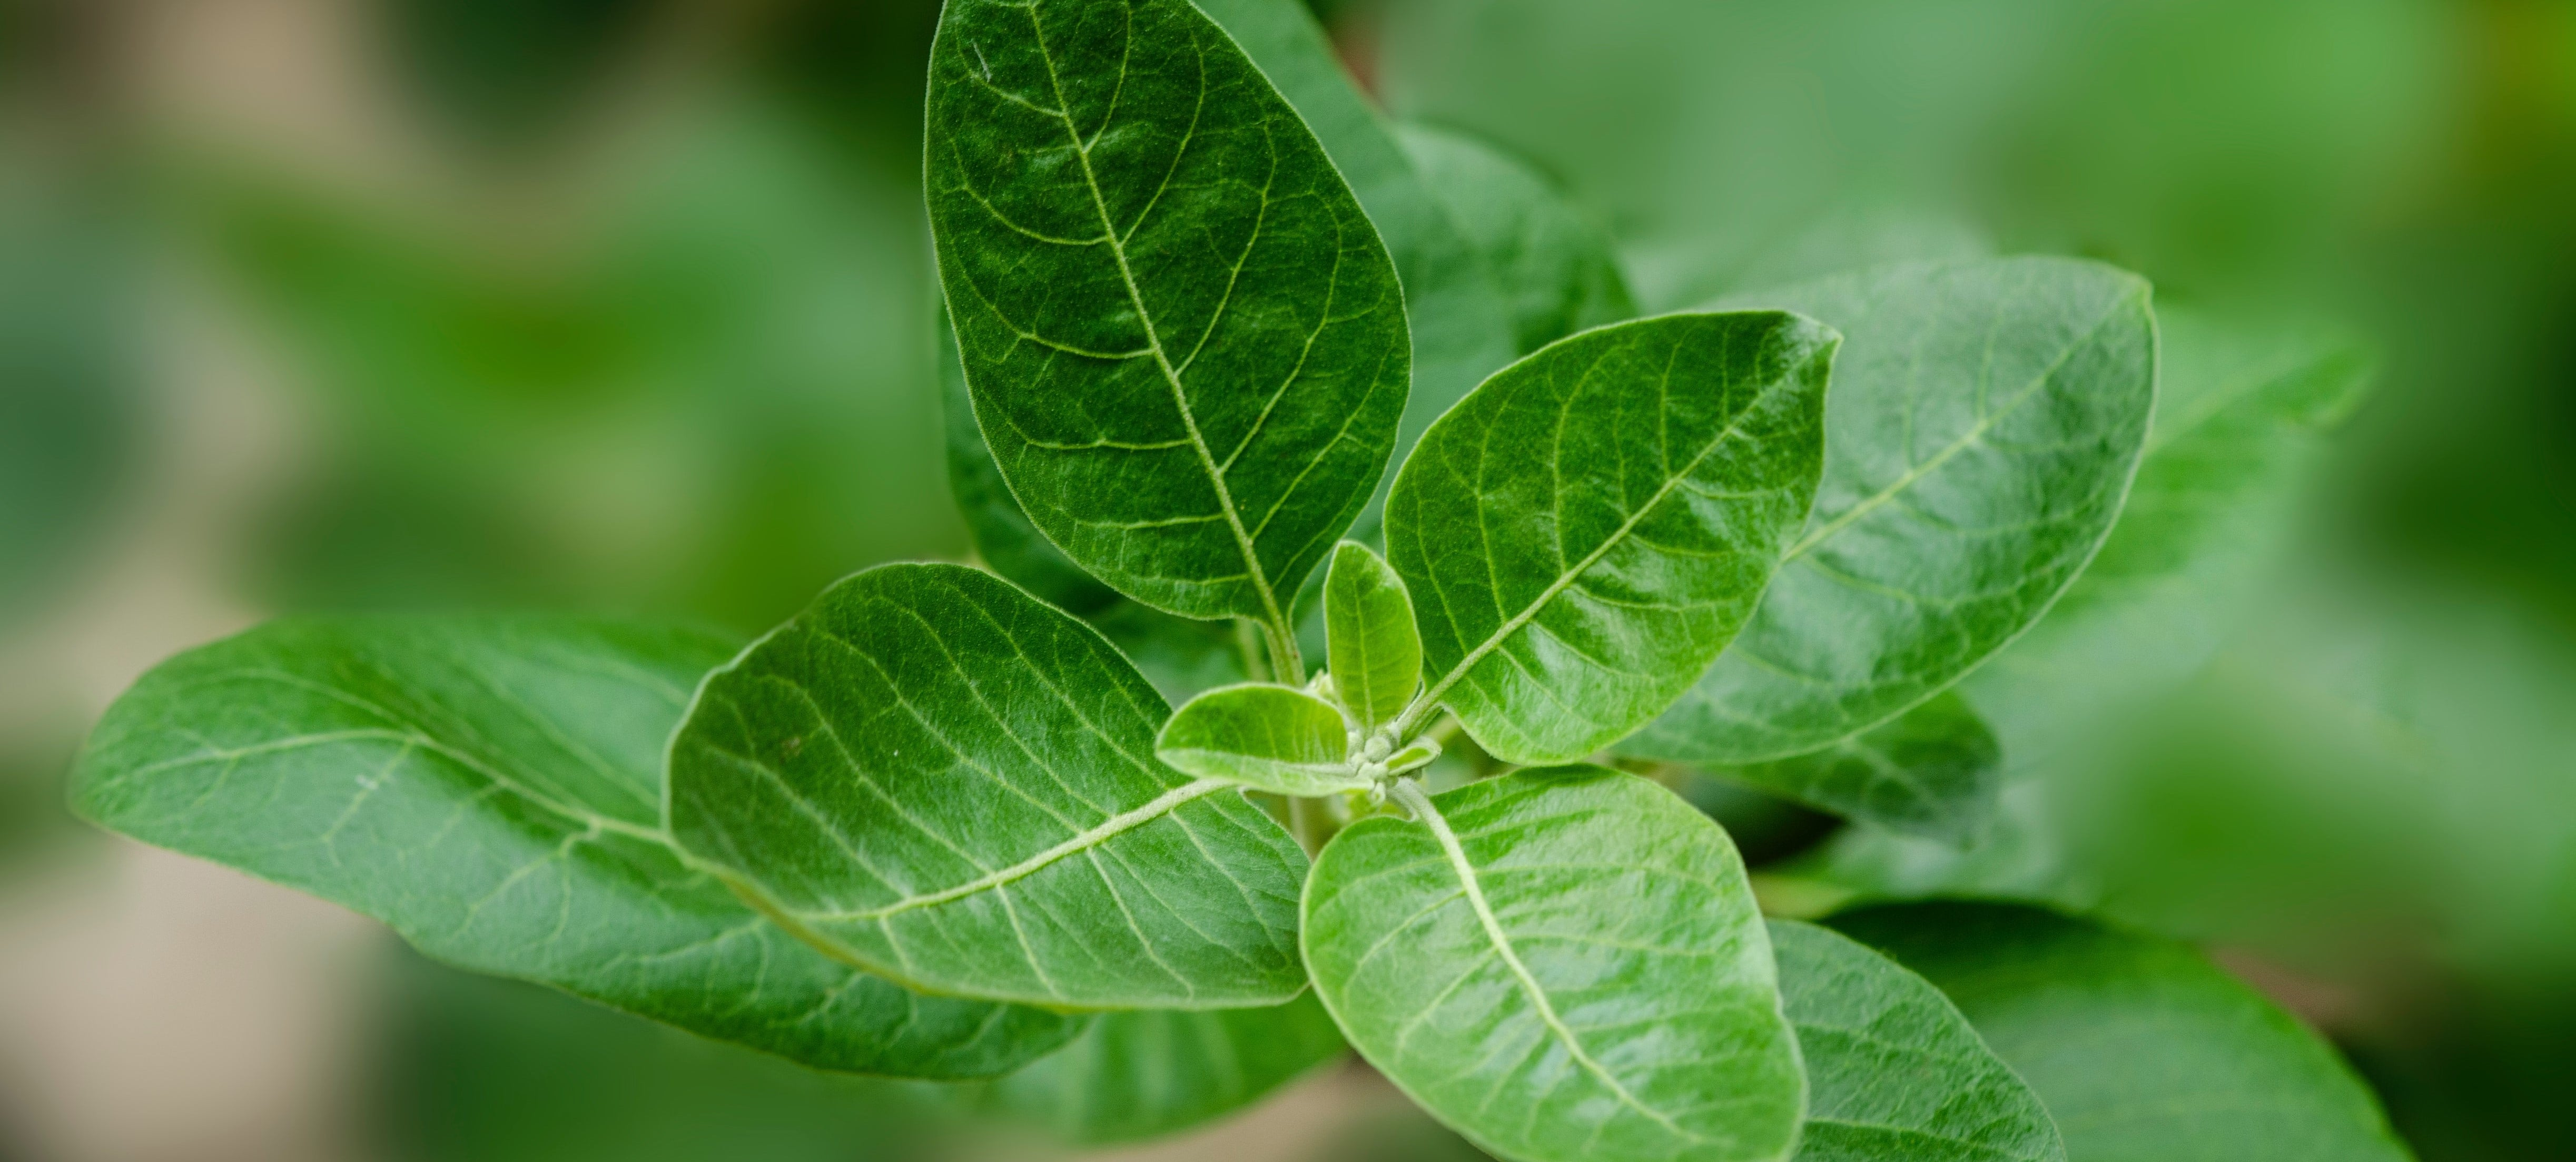 Blog about Ashwagandha, the picture shows the plant itself.